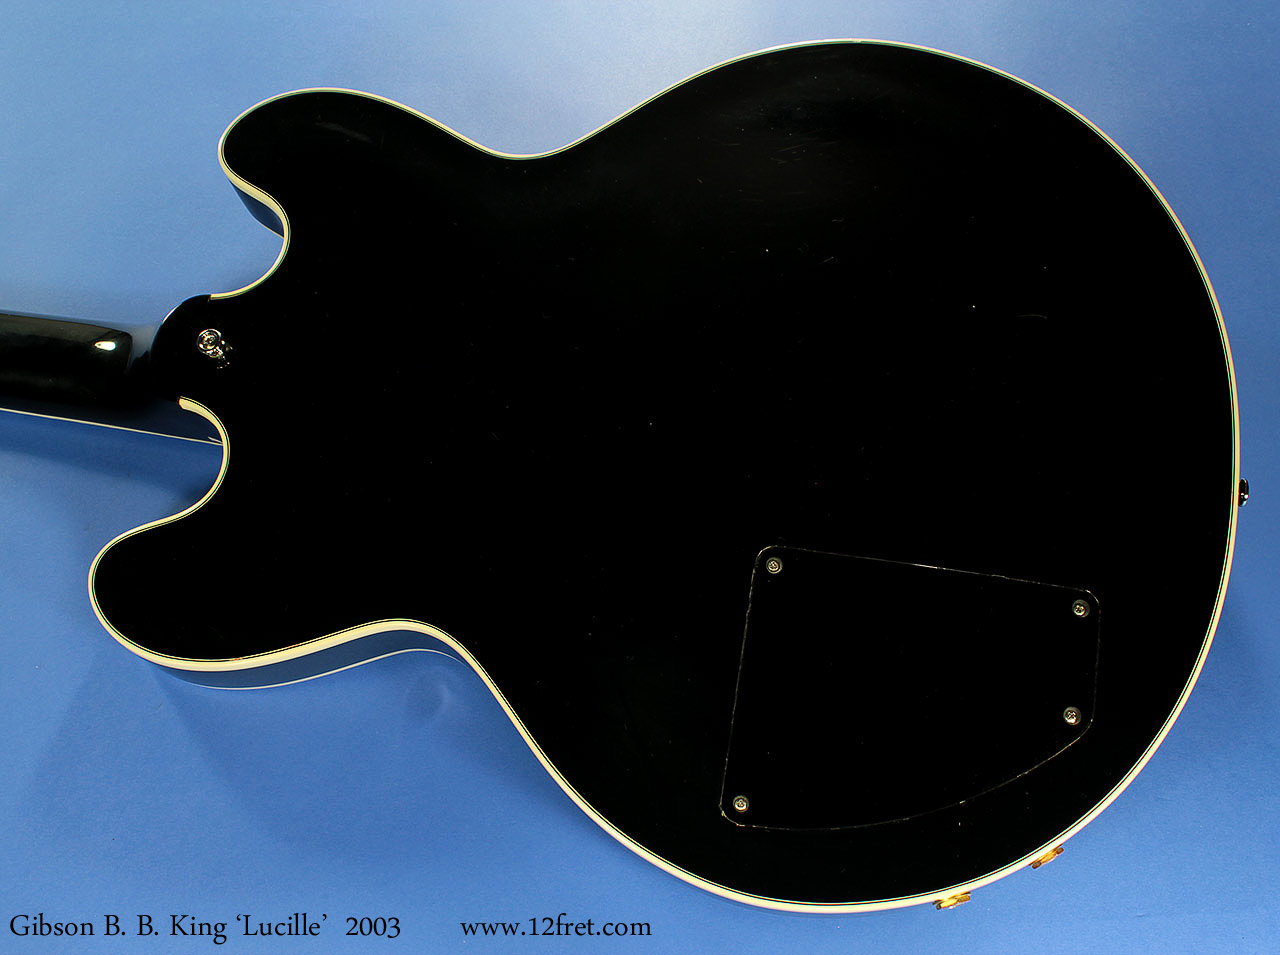 gibson-bb-king-lucille-2003-cons-back-1